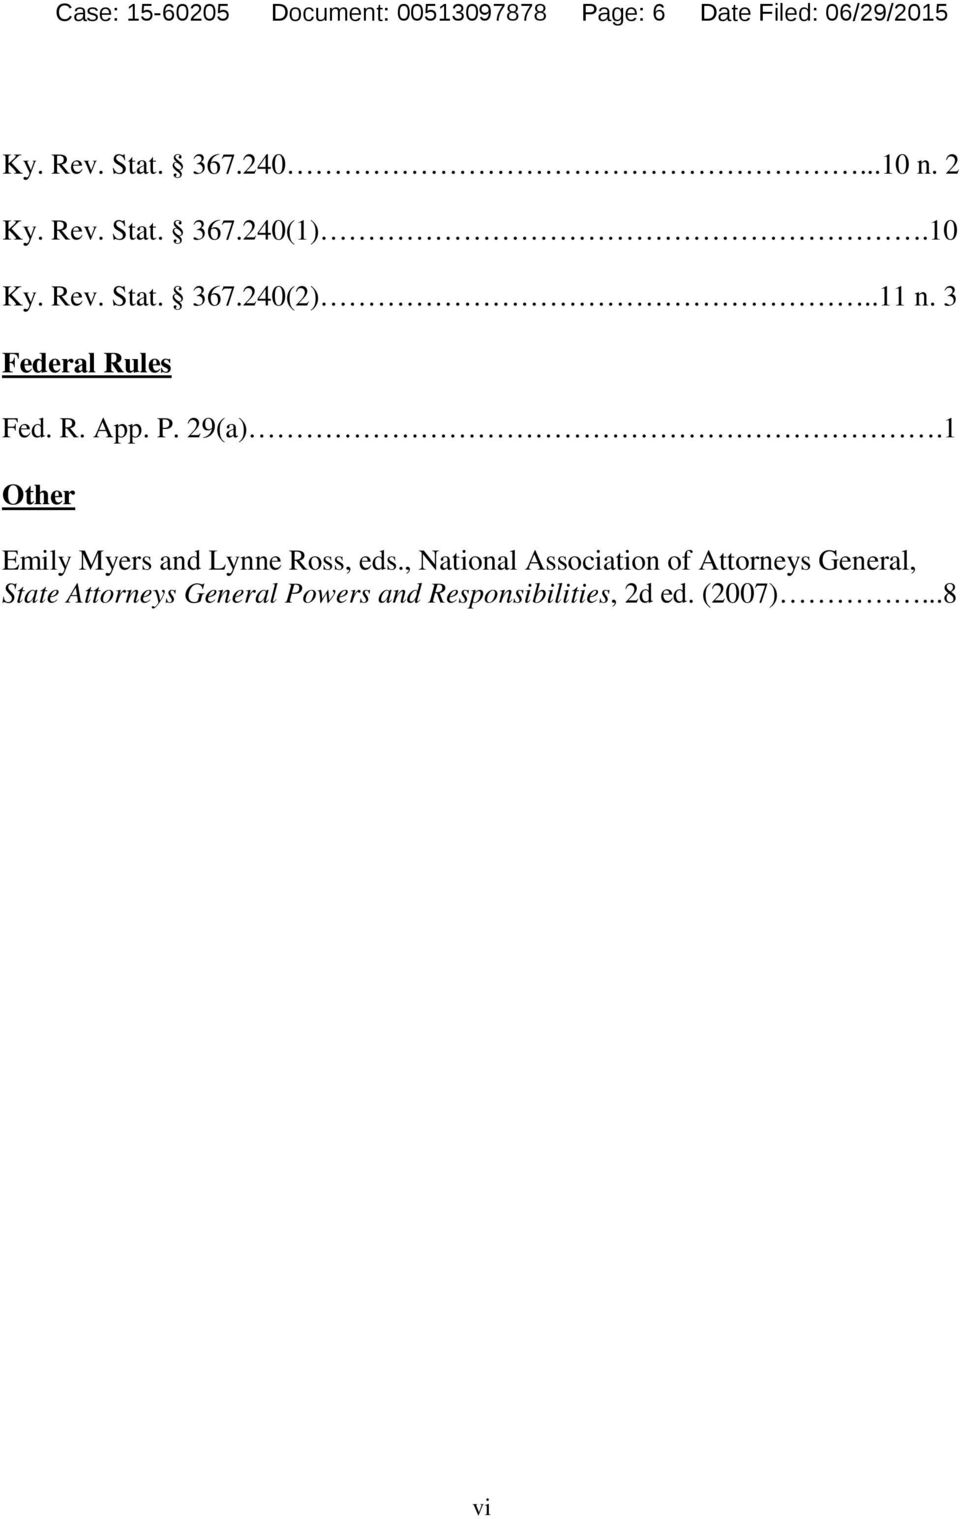 3 Federal Rules Fed. R. App. P. 29(a).1 Other Emily Myers and Lynne Ross, eds.